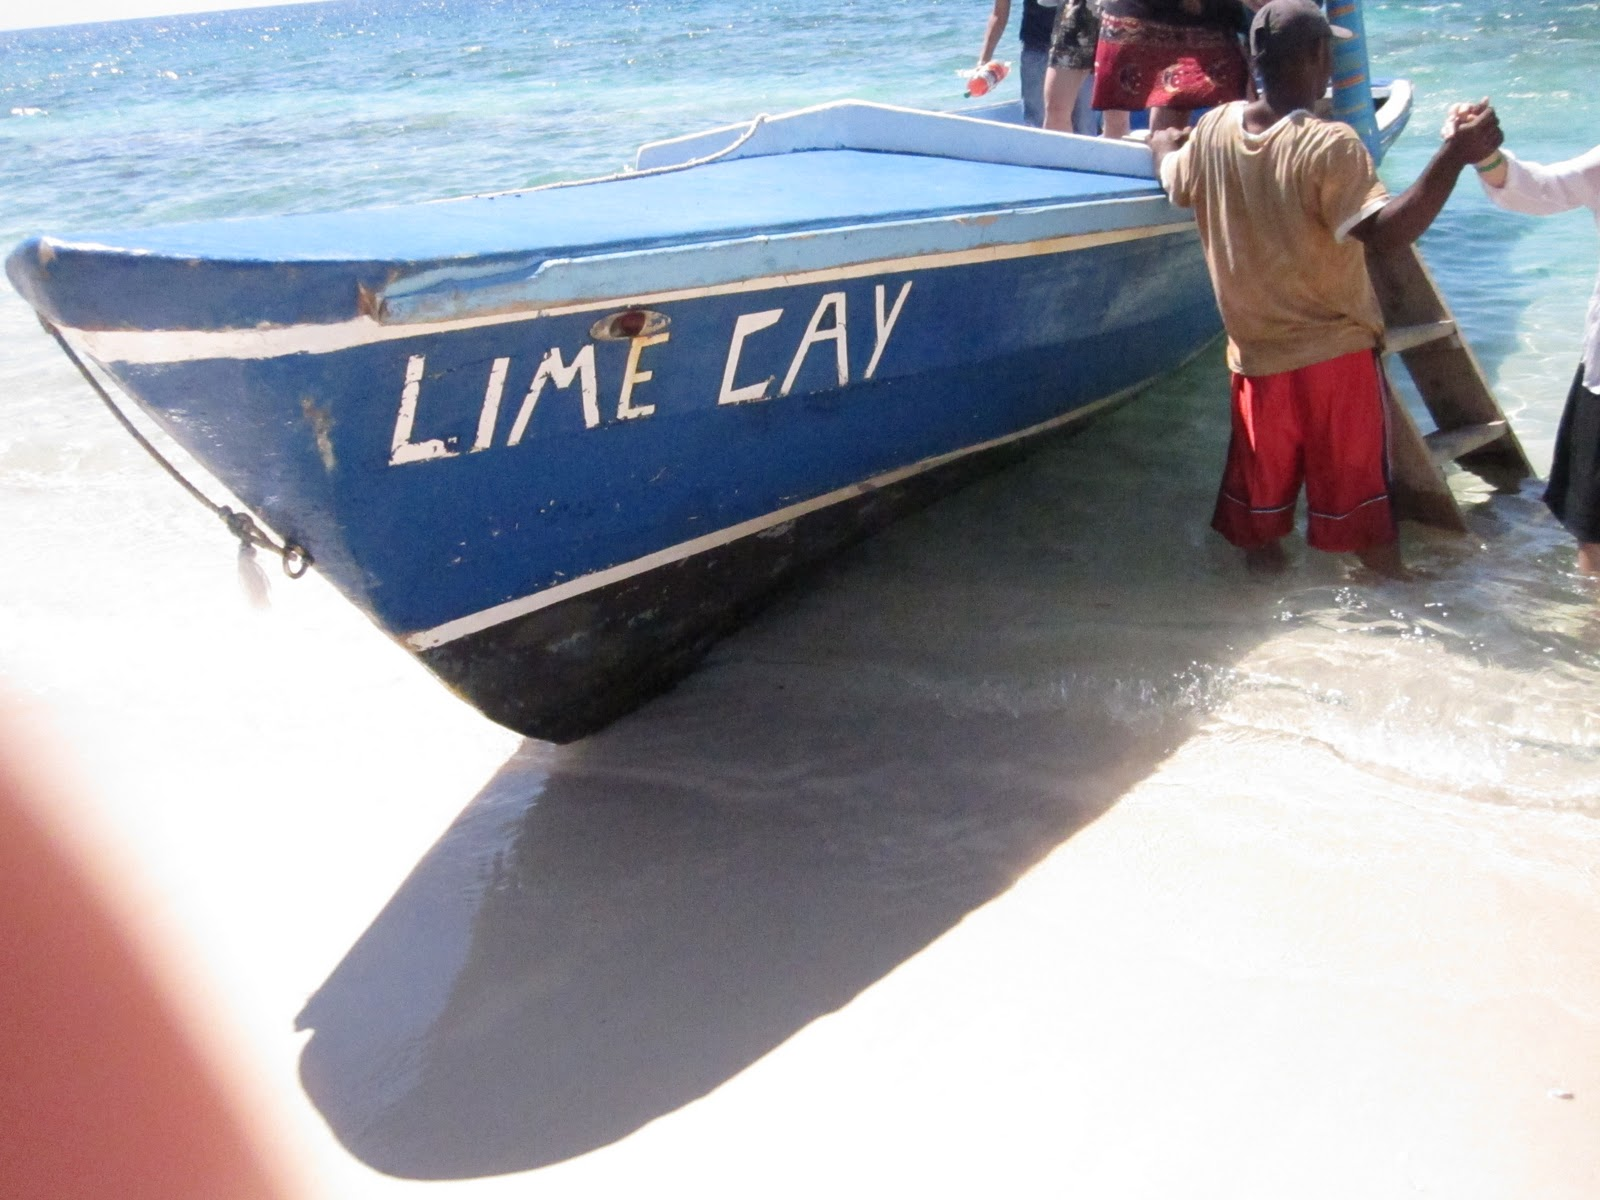 Image result for BOAT LIME KEY JAMAICA